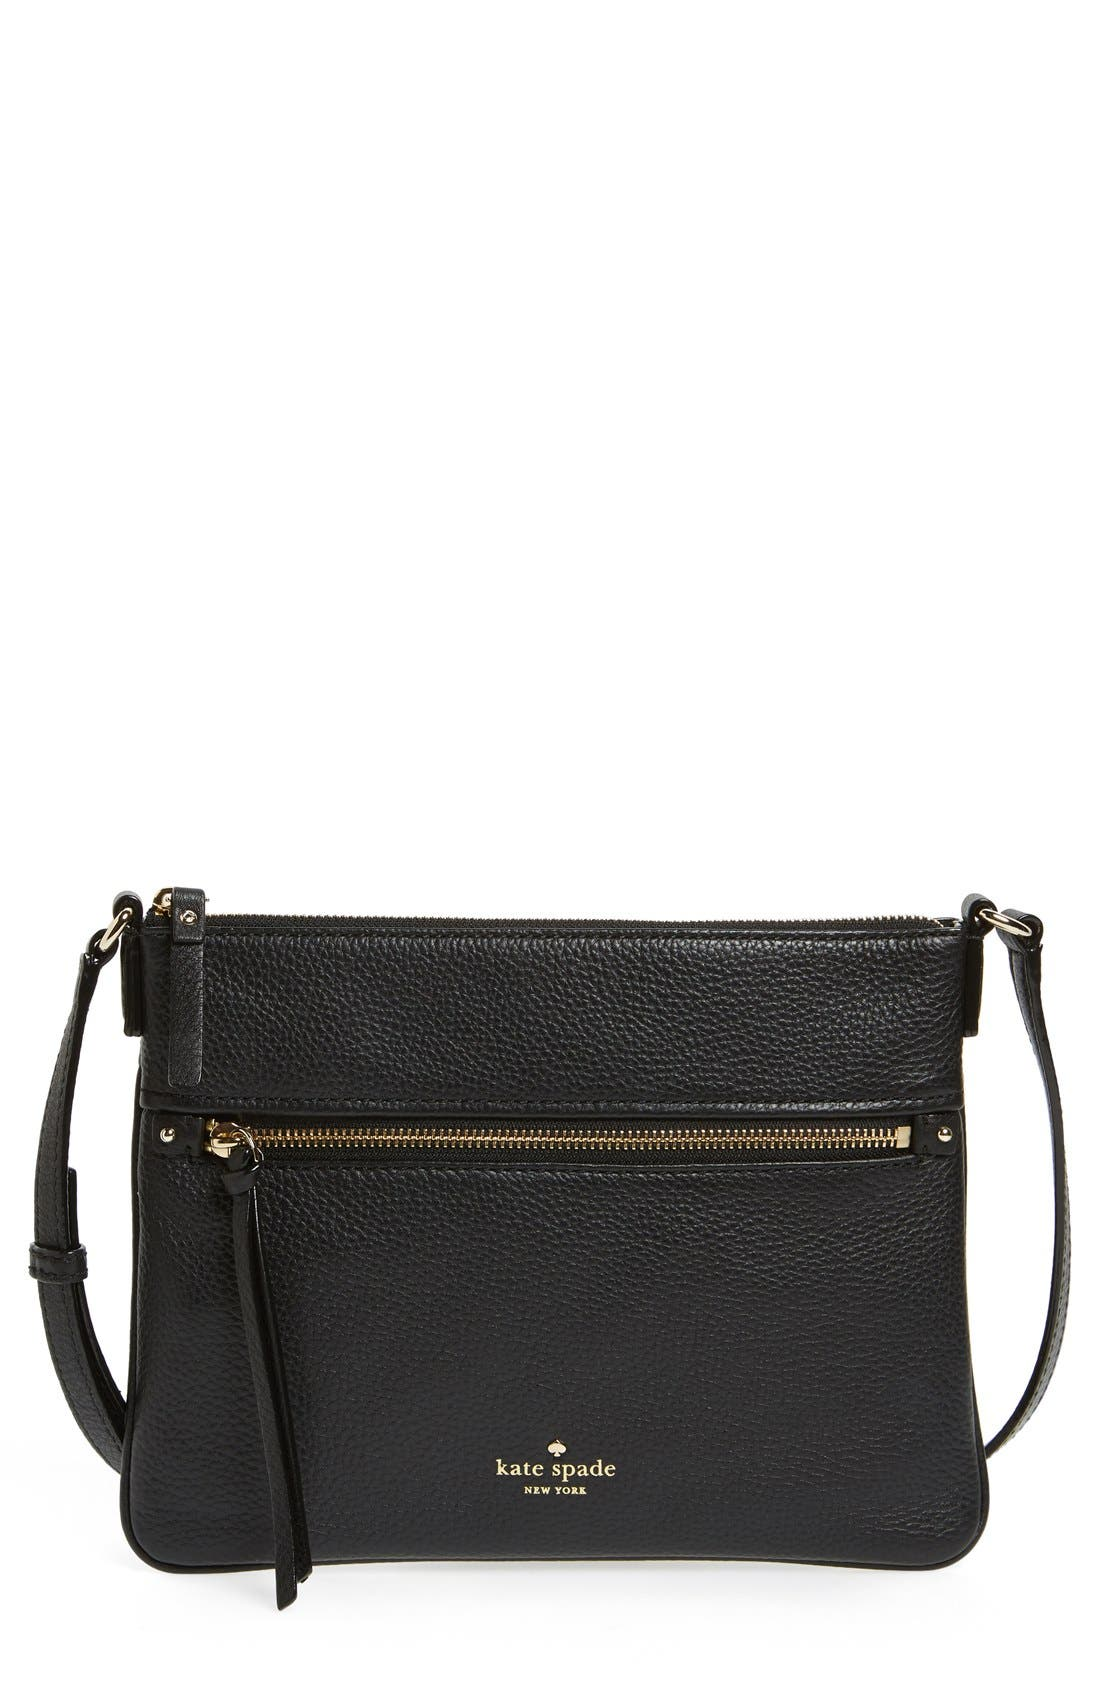 Alternate Image 1 Selected - kate spade new york 'cobble hill - gabriele' pebbled leather crossbody bag